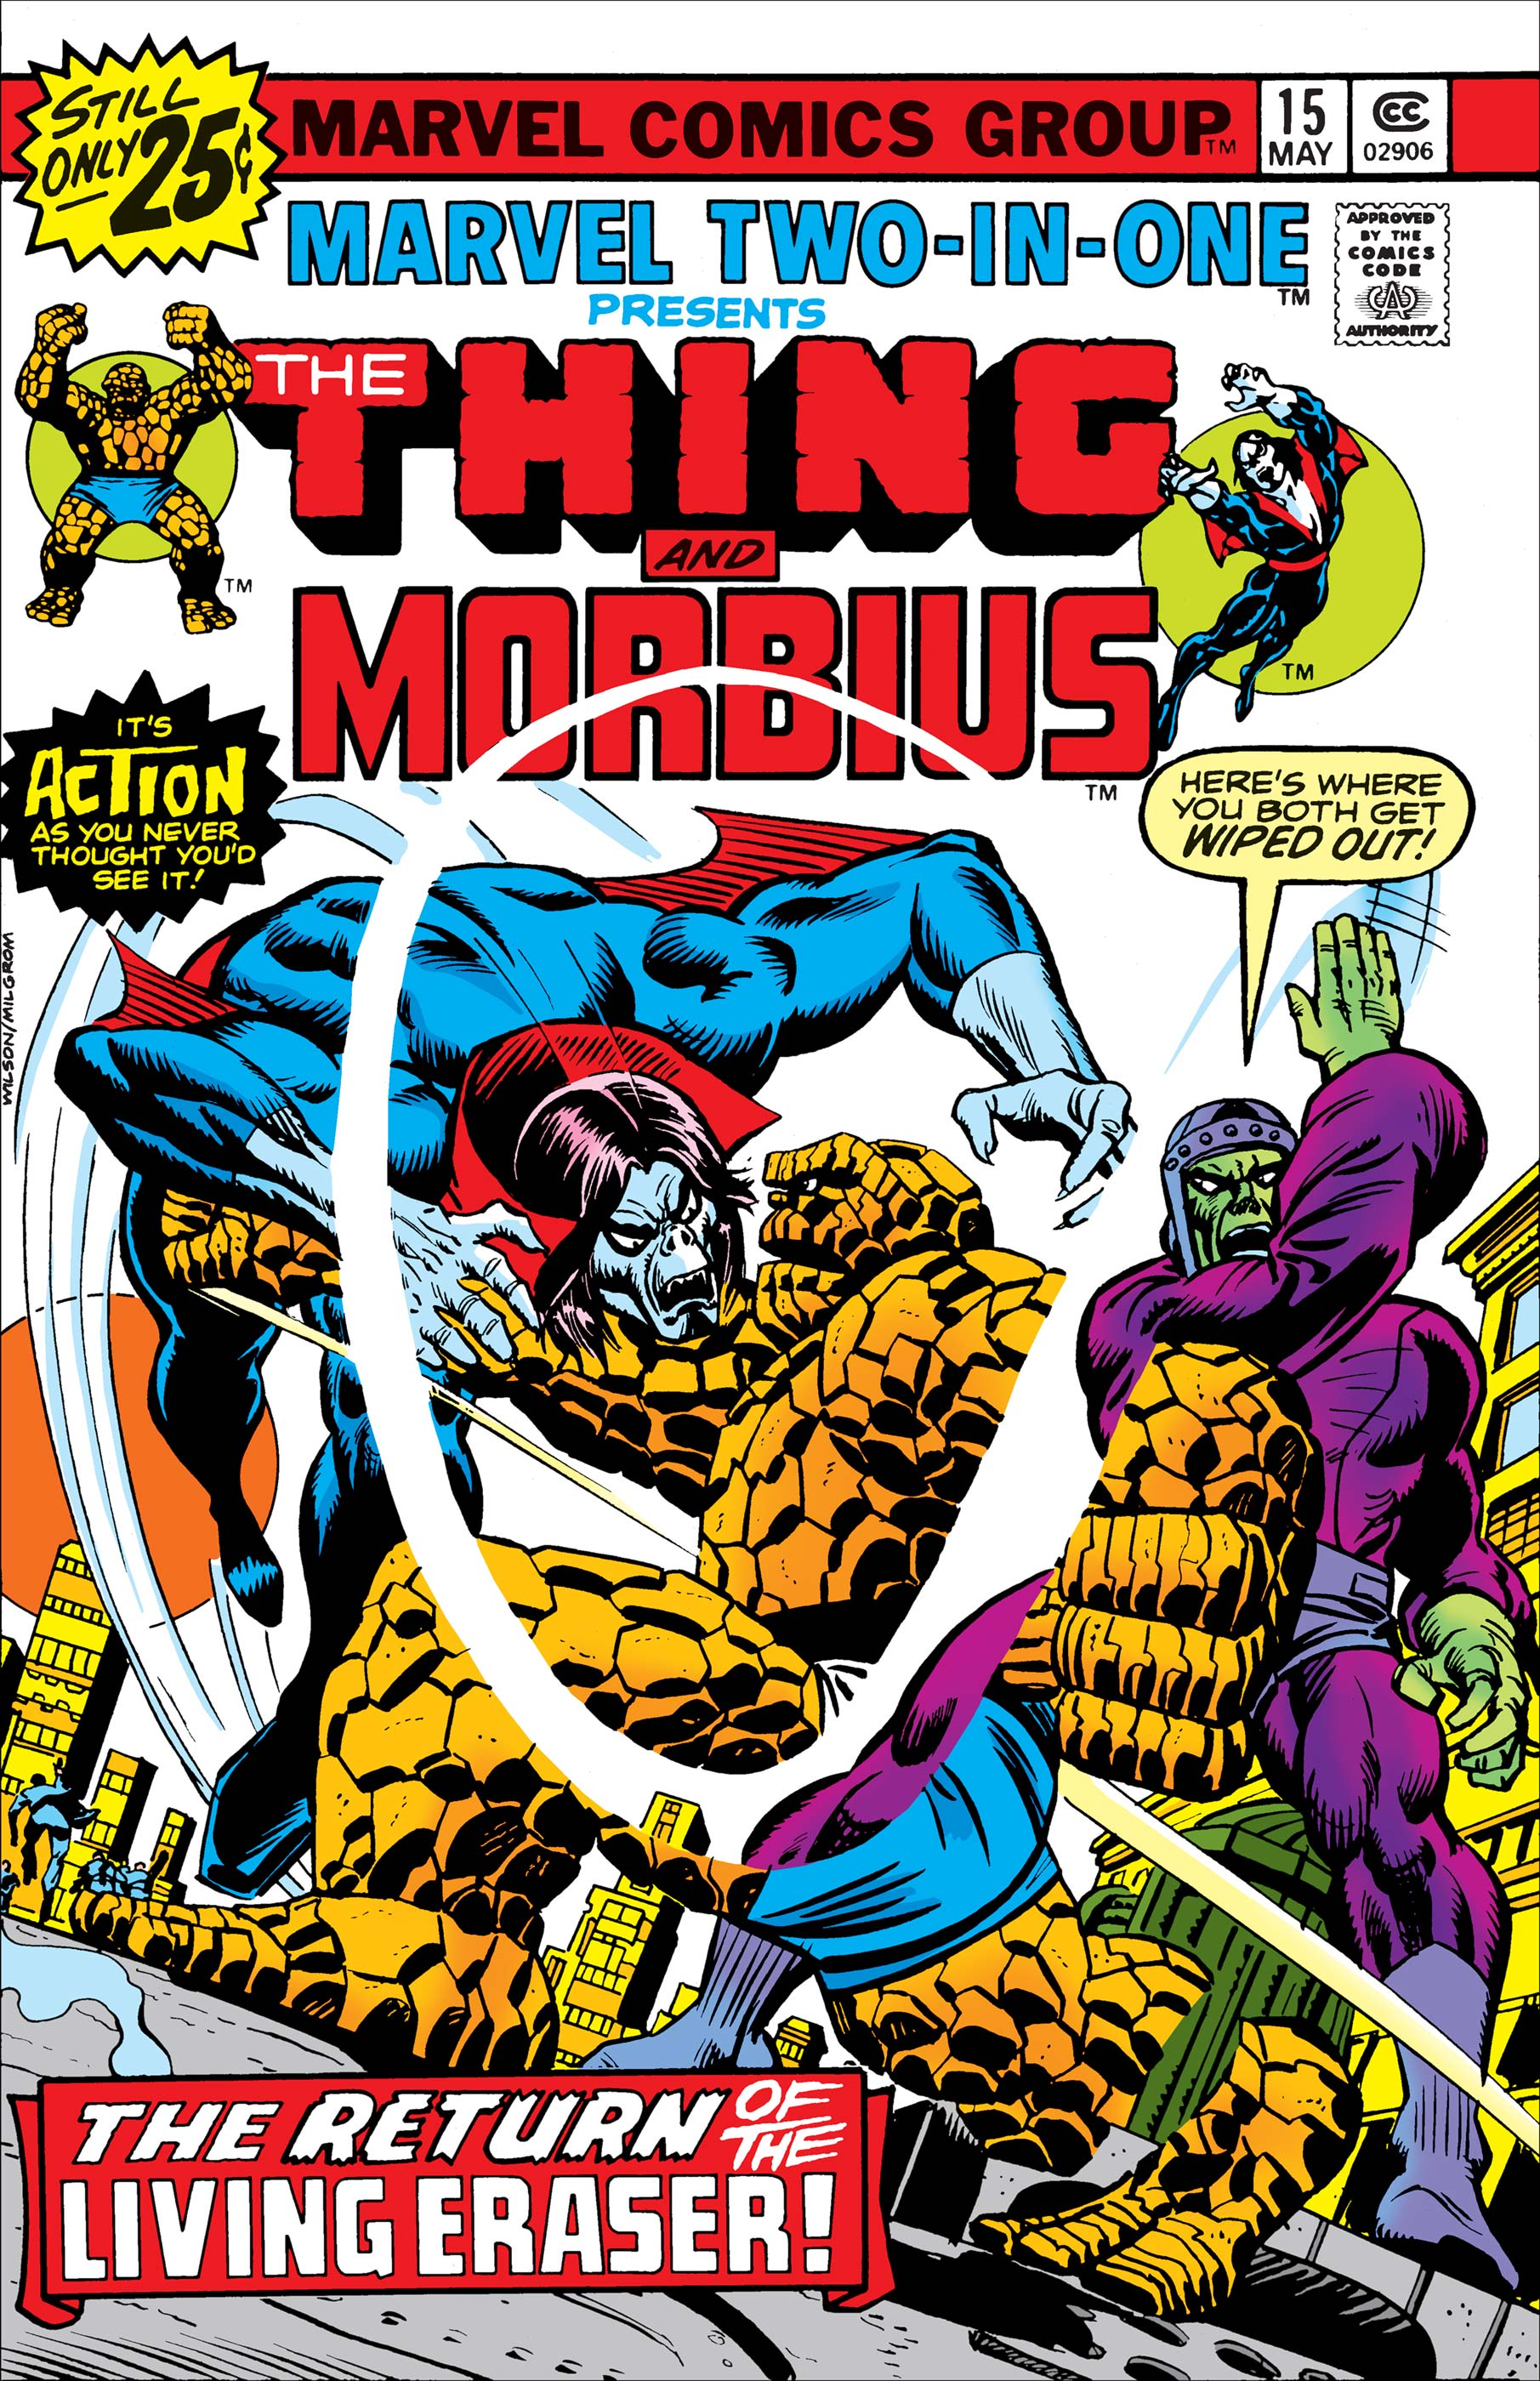 Marvel Two-in-One (1974) #15